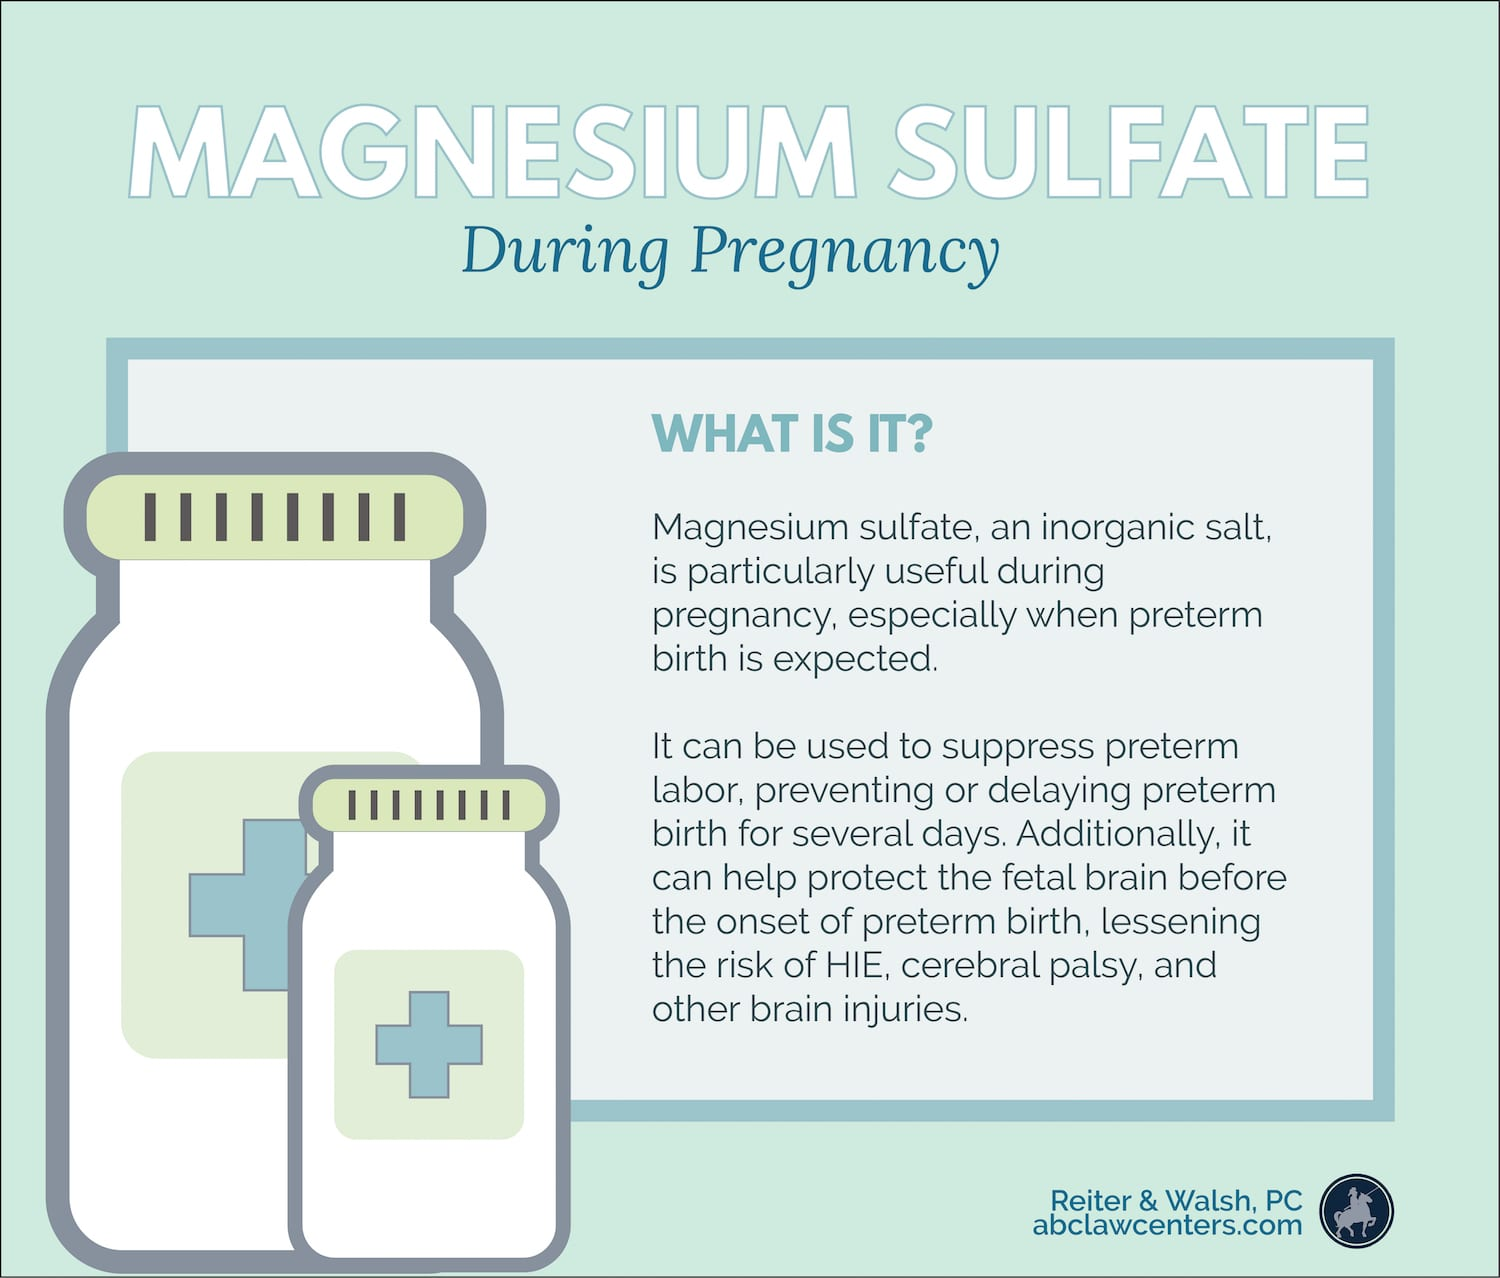 Magnesium Sulfate During Pregnancy